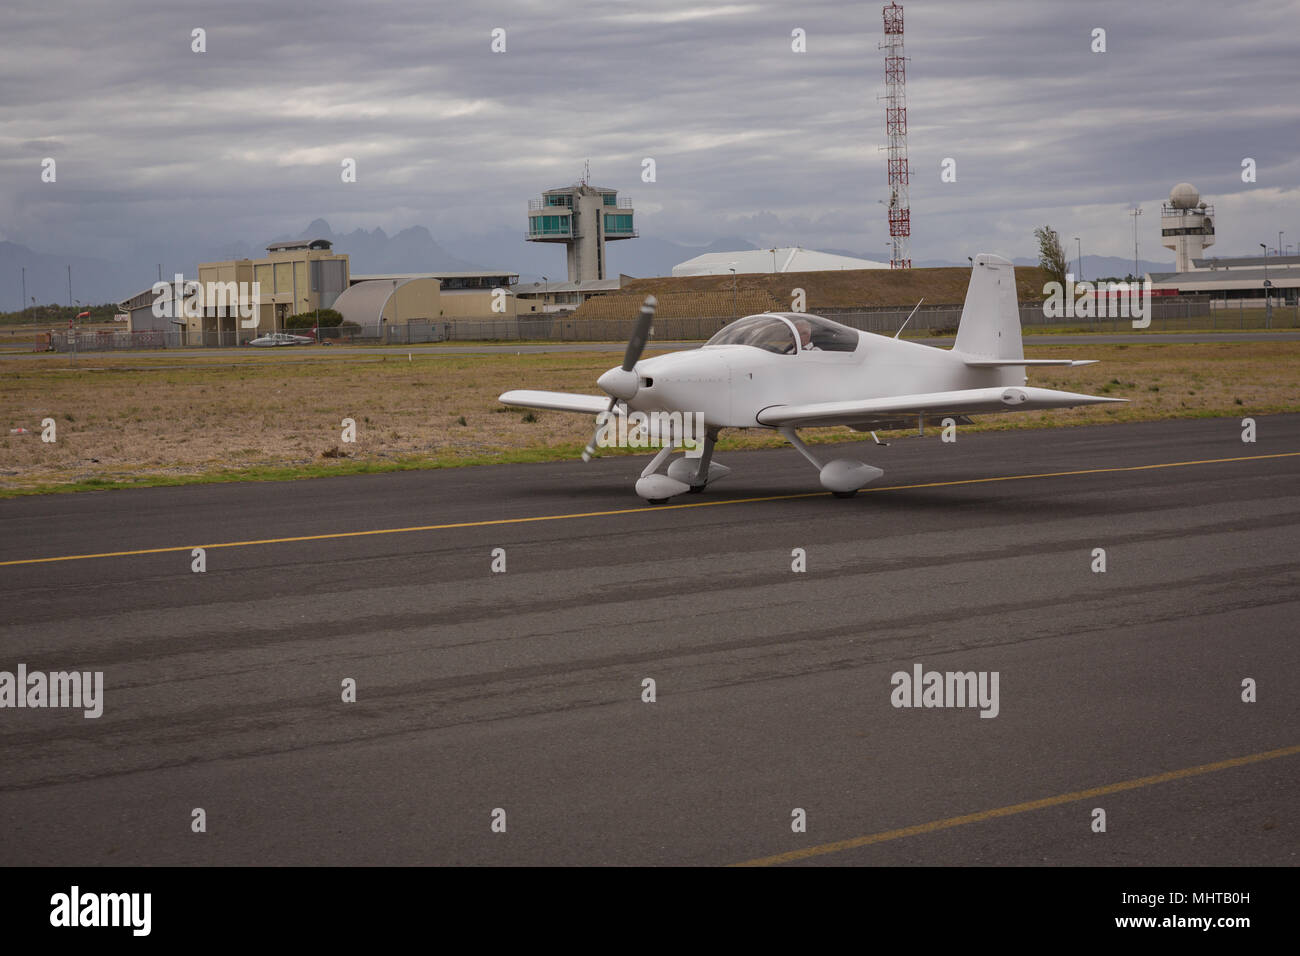 Aircraft taxiing on runway - Stock Image